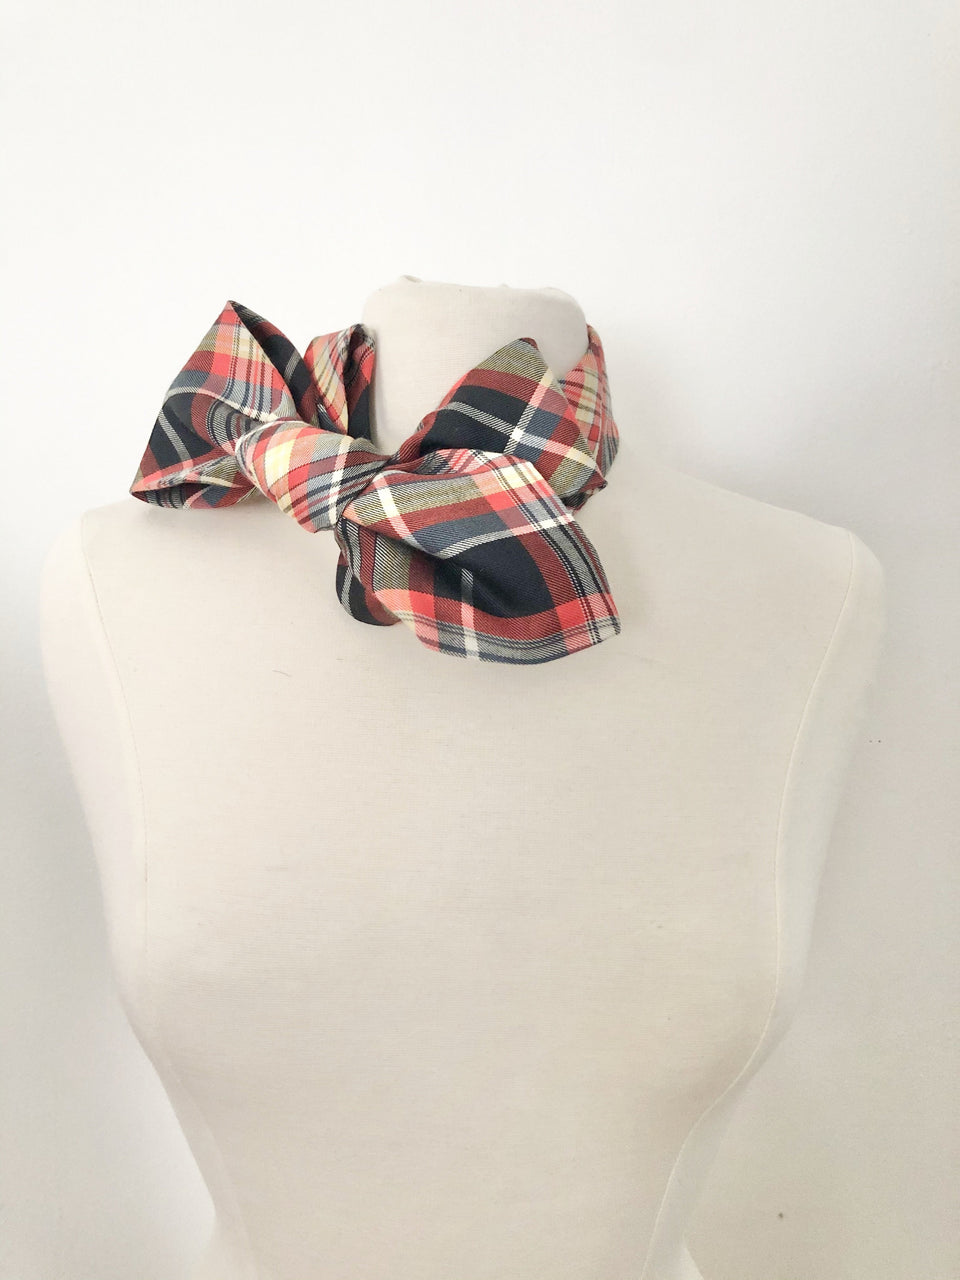 Plaid Flannel  Petite Birdie - red and navy